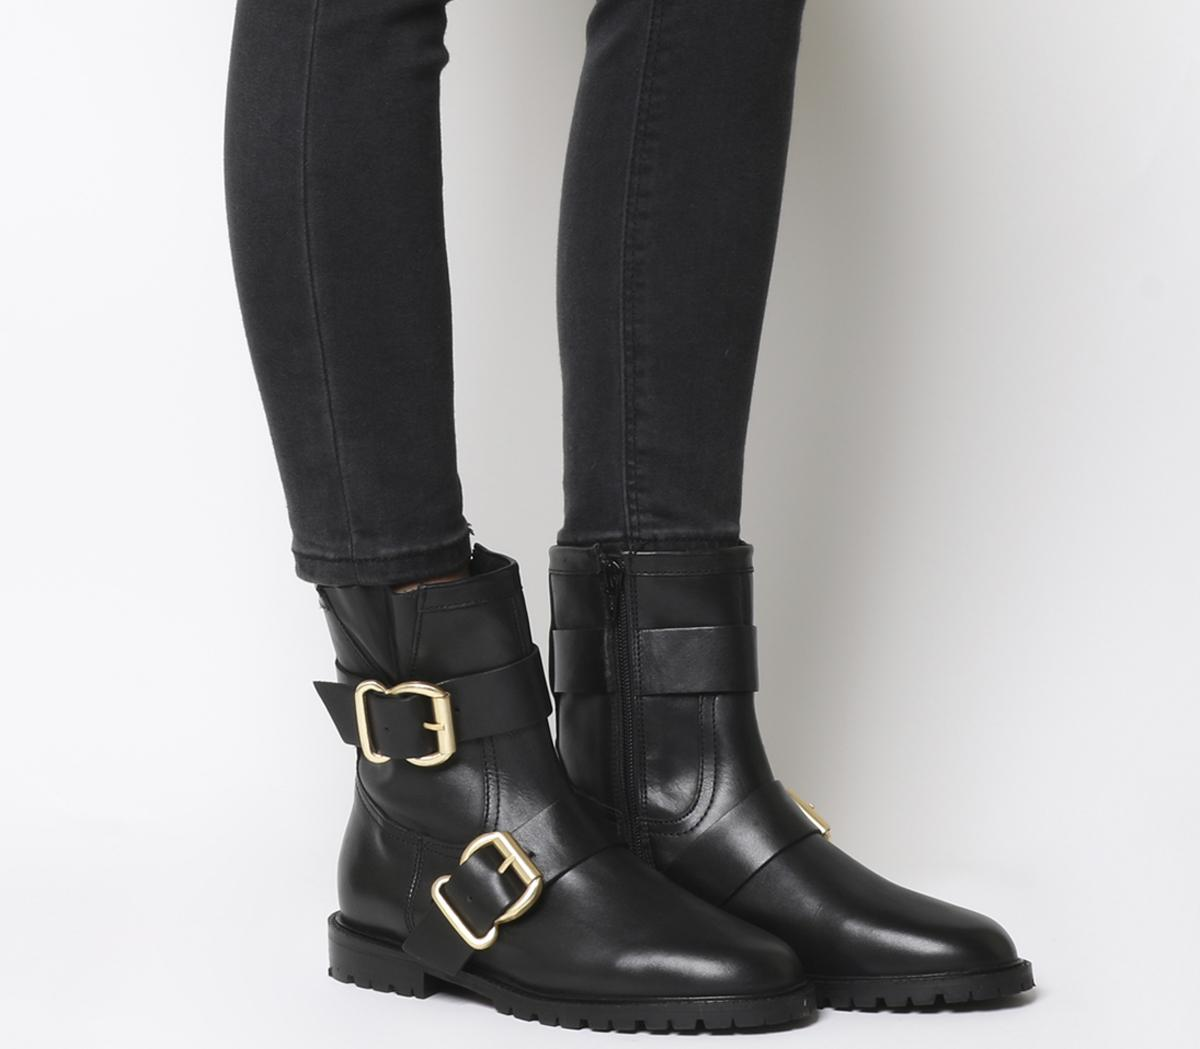 Womens Office Alert Embellished Biker Boots Black Leather With Hardware Boots